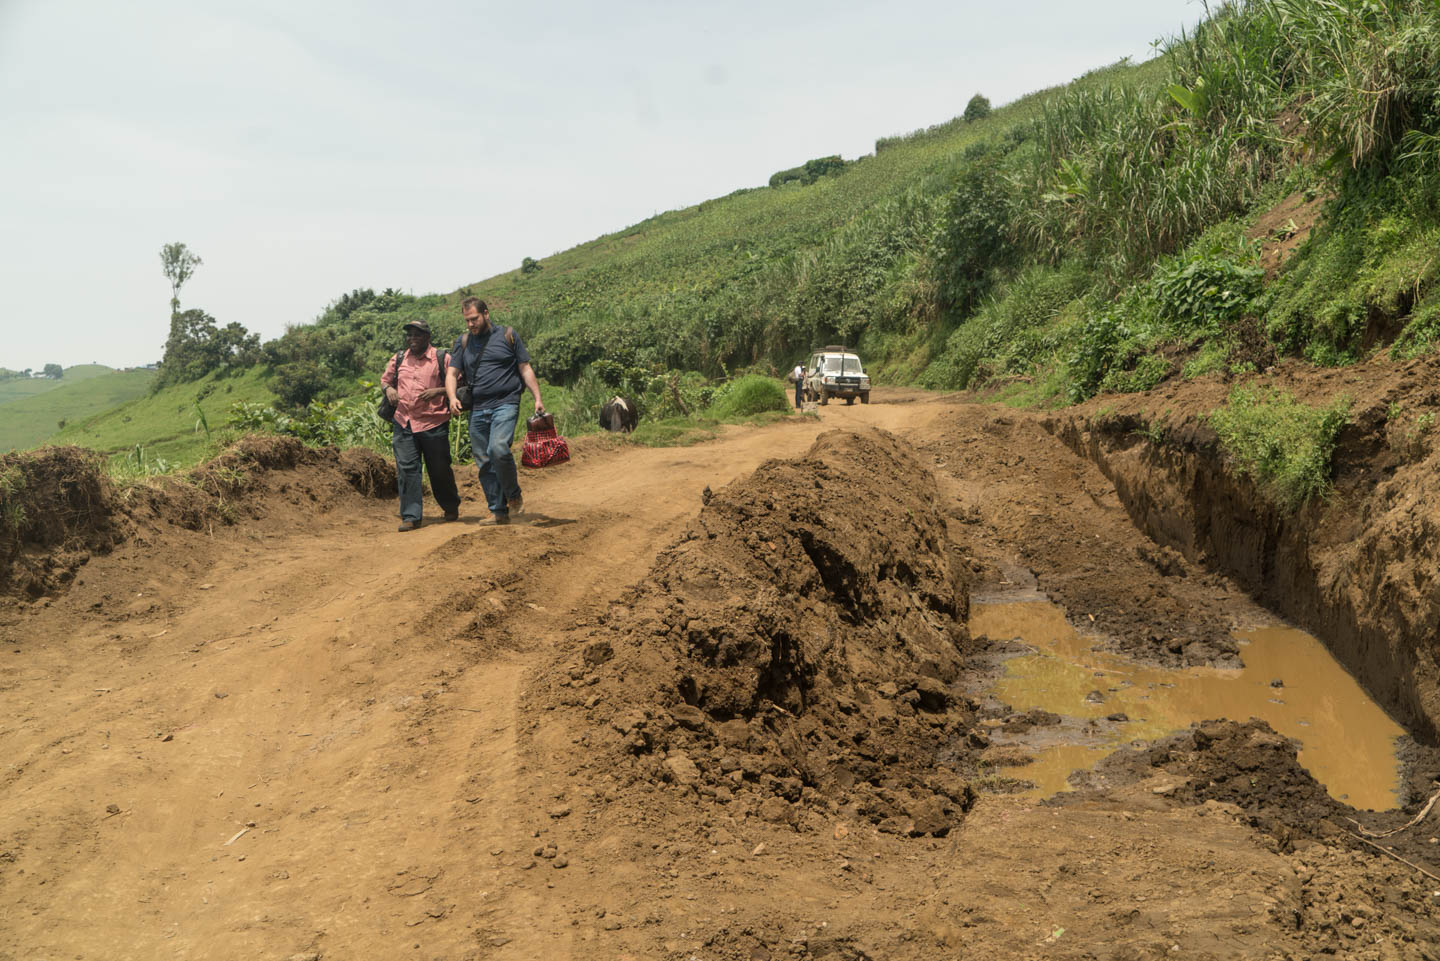 On the road from Misisi, Congo, Fr. Martin Bahati, S.J., and Mr. Luis Vizcano, SJ. walk toward another car that came from Goma to pick them up. The road had been blocked for 3 days because of the mud.